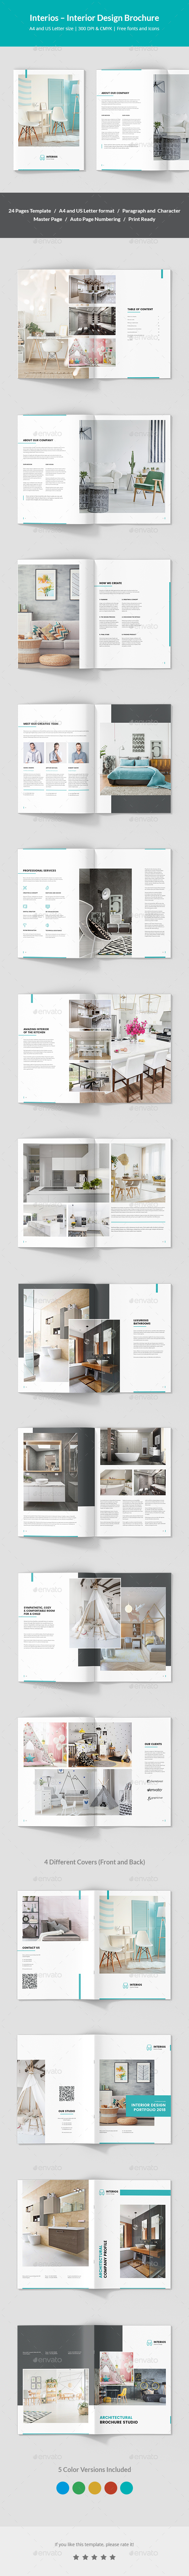 Interios – Interior Design Brochure - Corporate Brochures